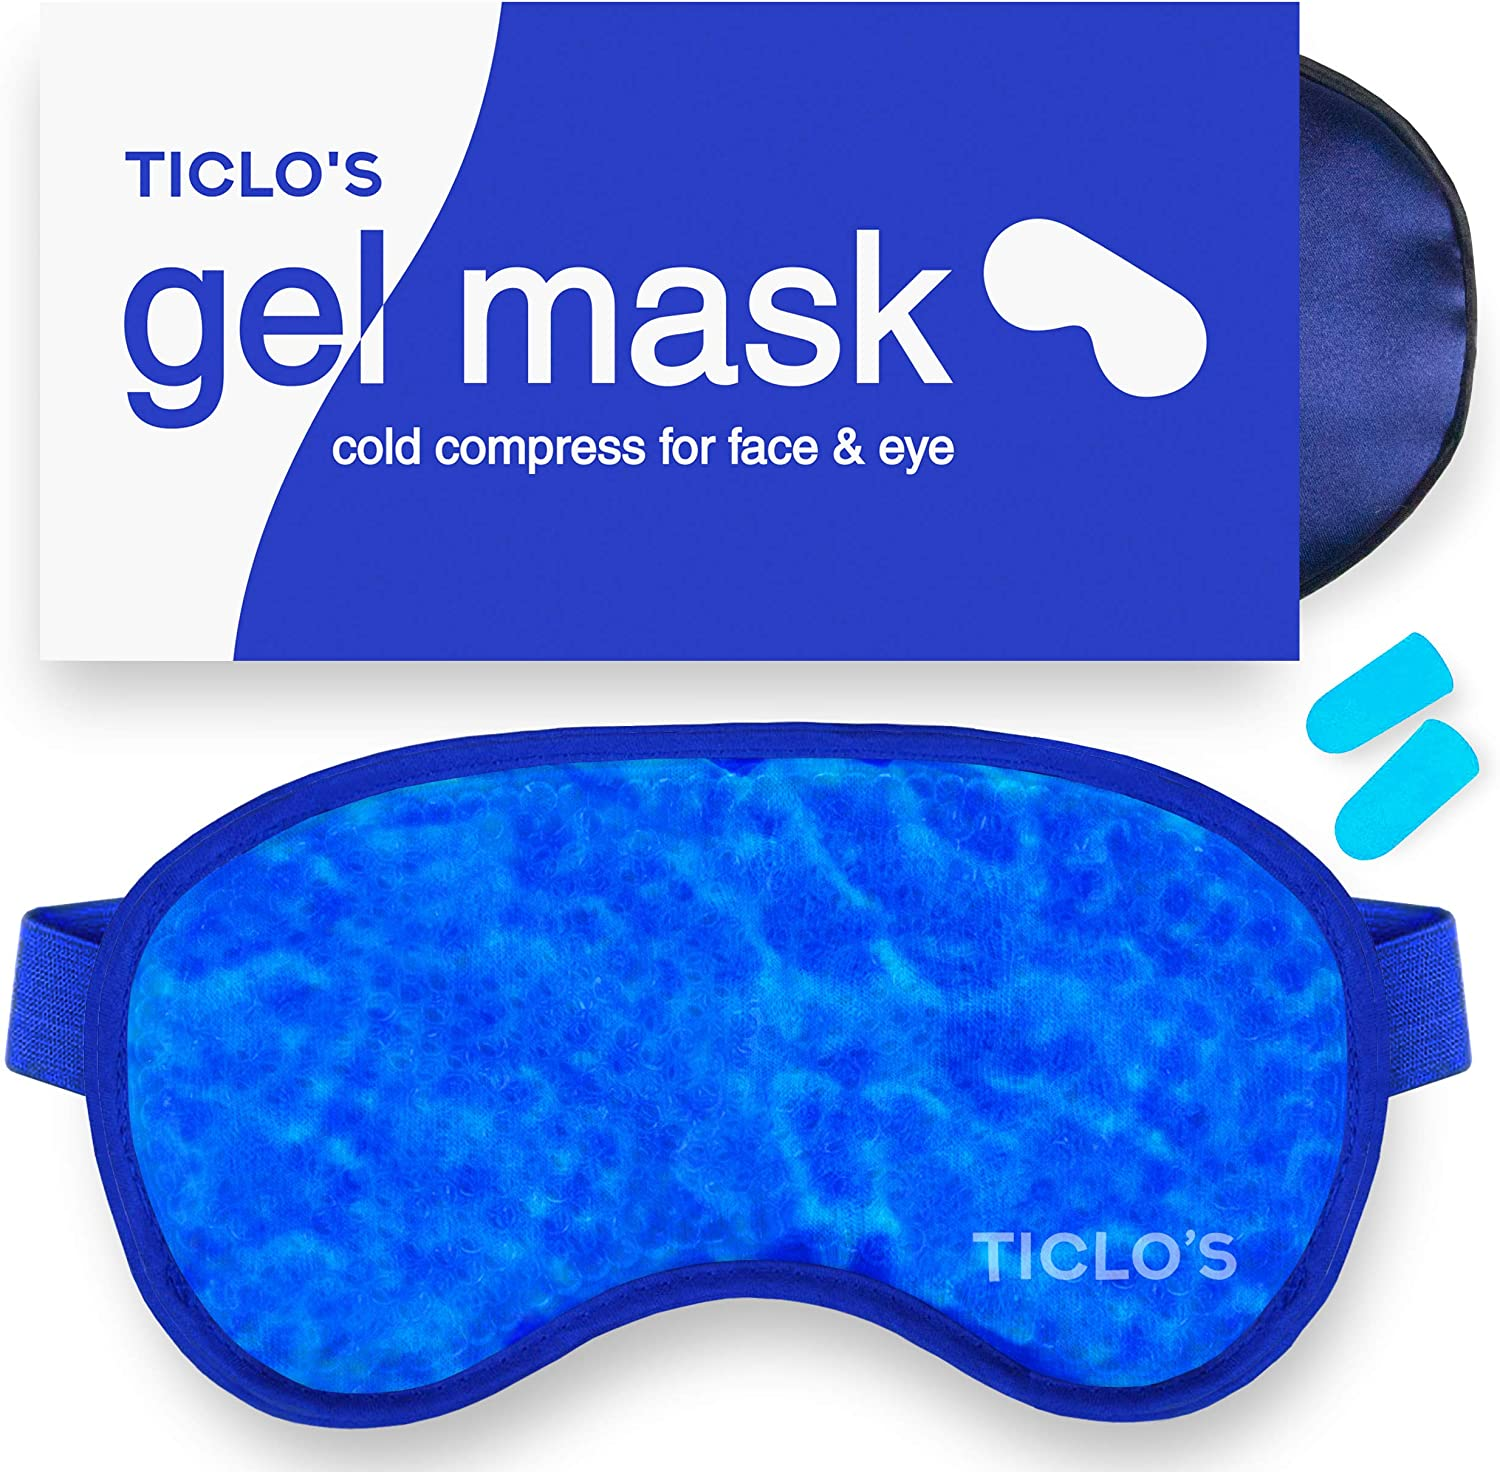 Ticlo's Gel Eye Mask - Cooling Ice Cold Compress Pad - Relax & Massage Your Tired, Puffy Eyes, Headaches, Face & Dark Circles - Bonus Silk Sleep Mask